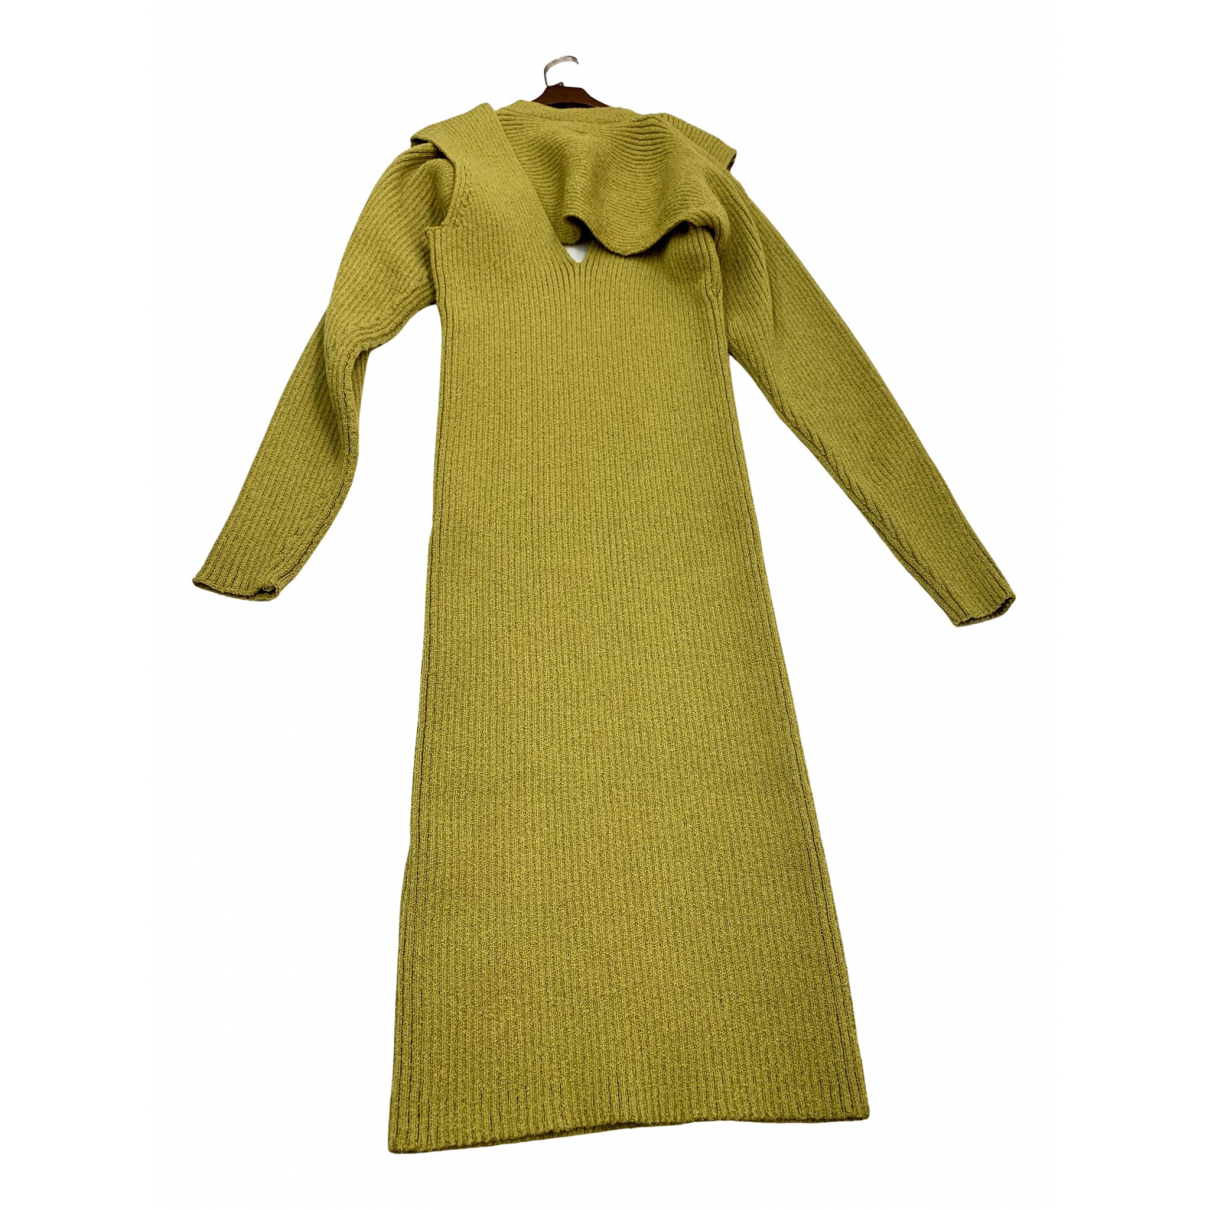 Bottega Veneta N Yellow dress for Women M International